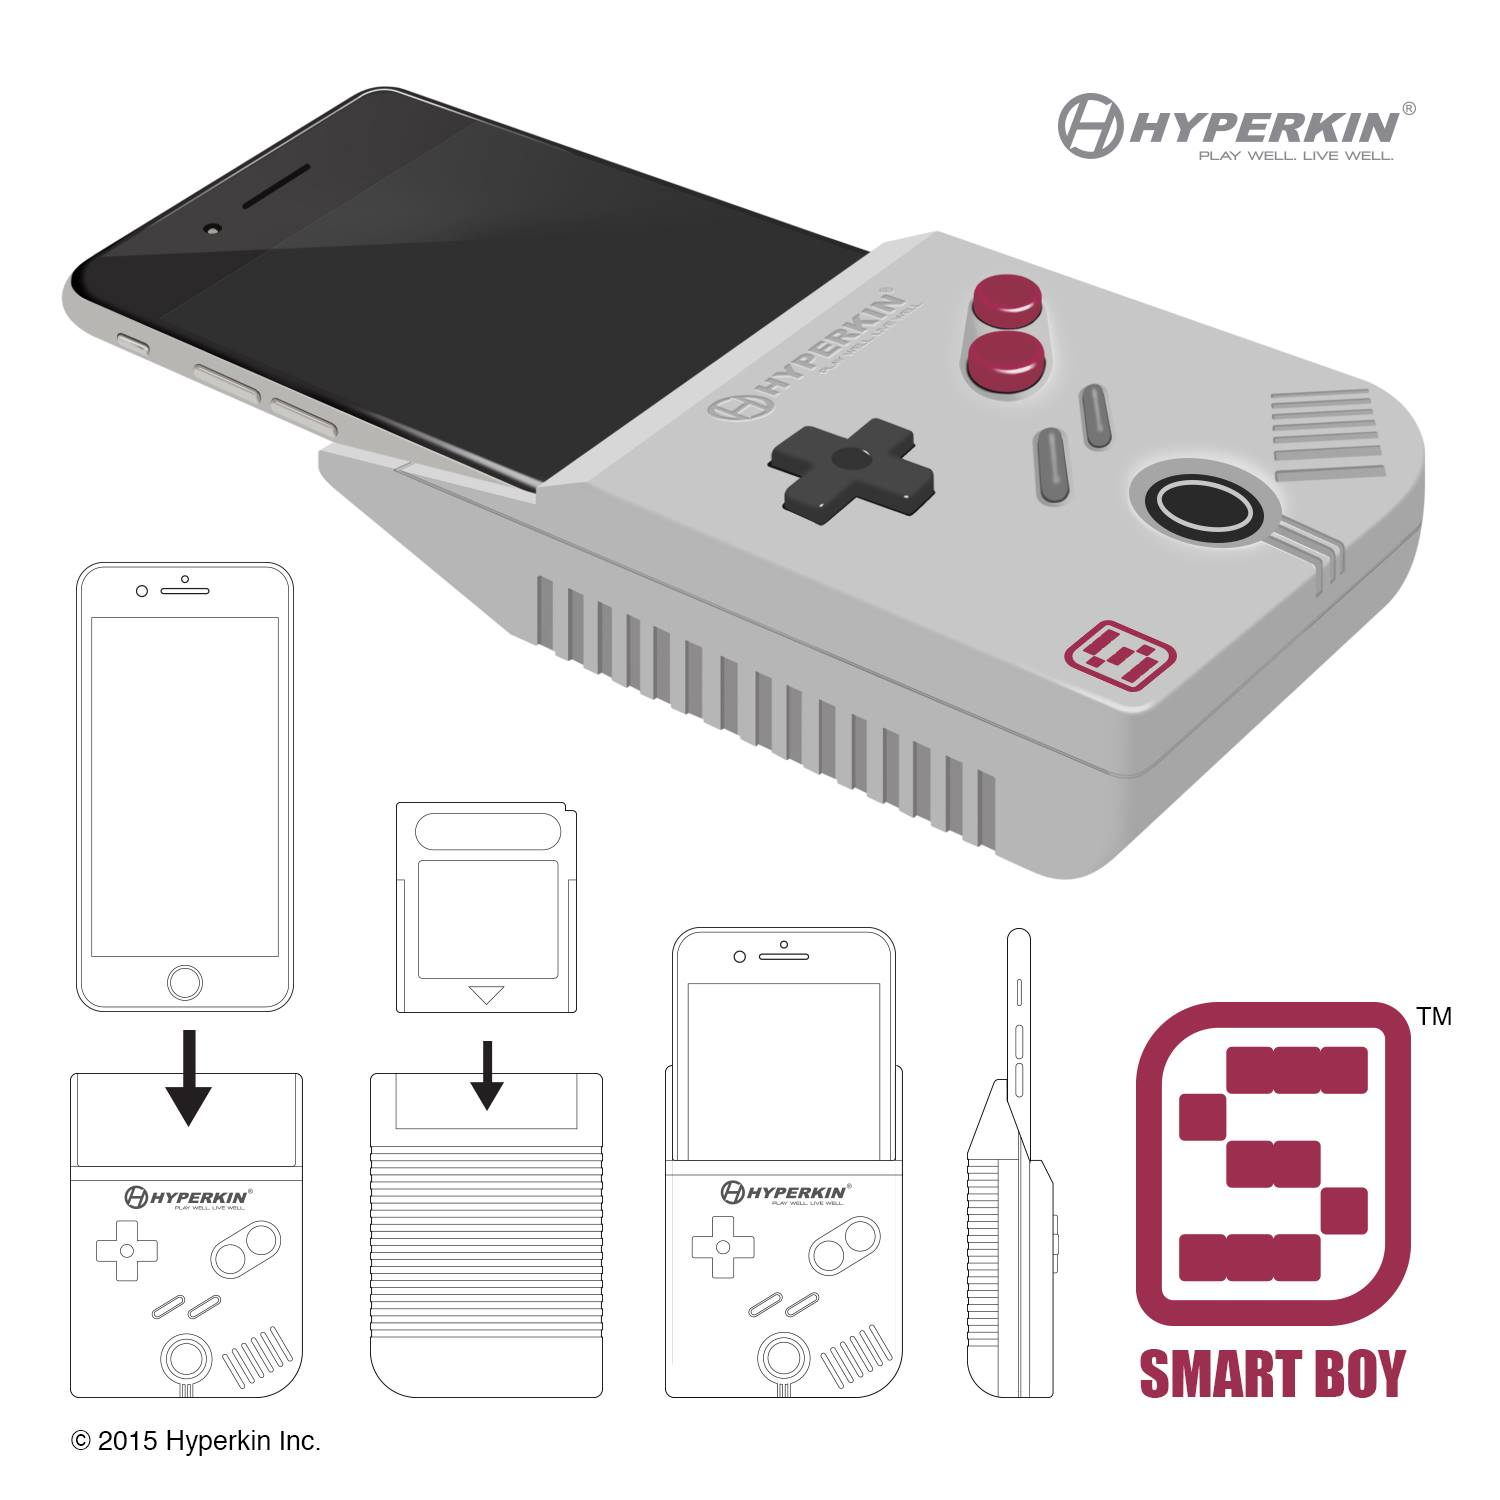 Transformez votre iPhone en Game Boy grâce à la Smart Boy  dans News Games 1428093549-3384-photo-smart-boy